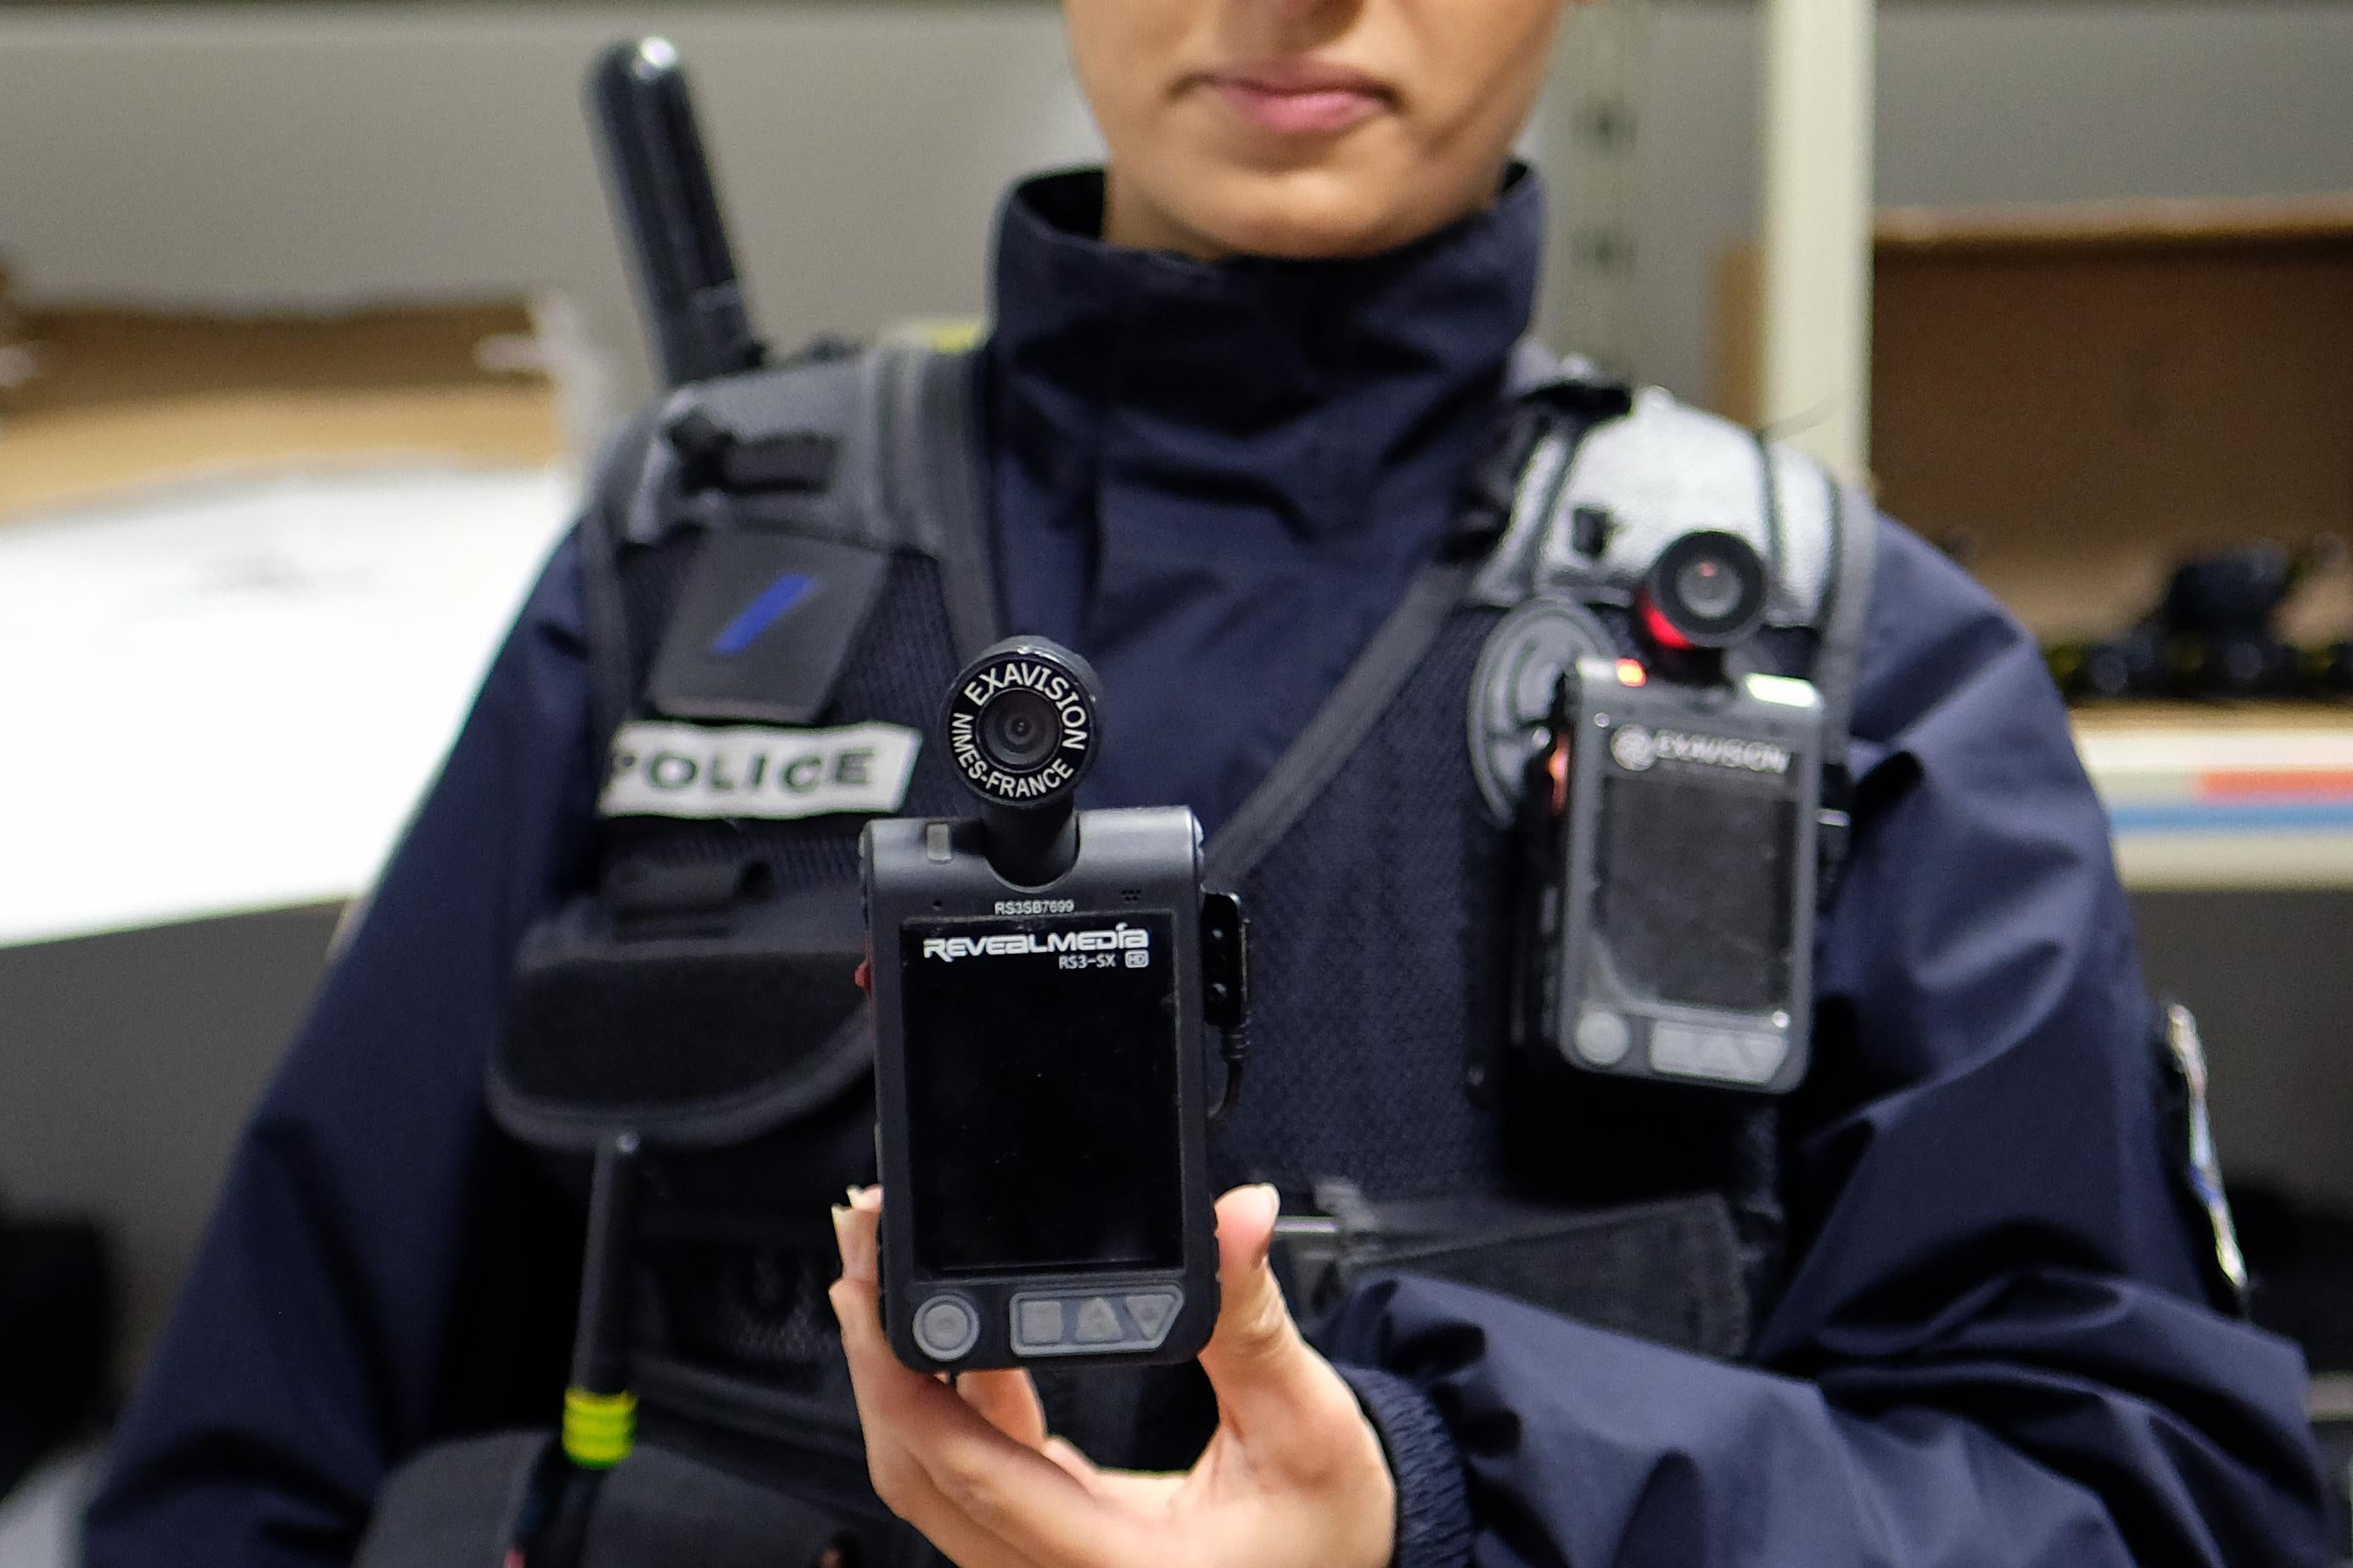 A person in police gear holds up a body camera.